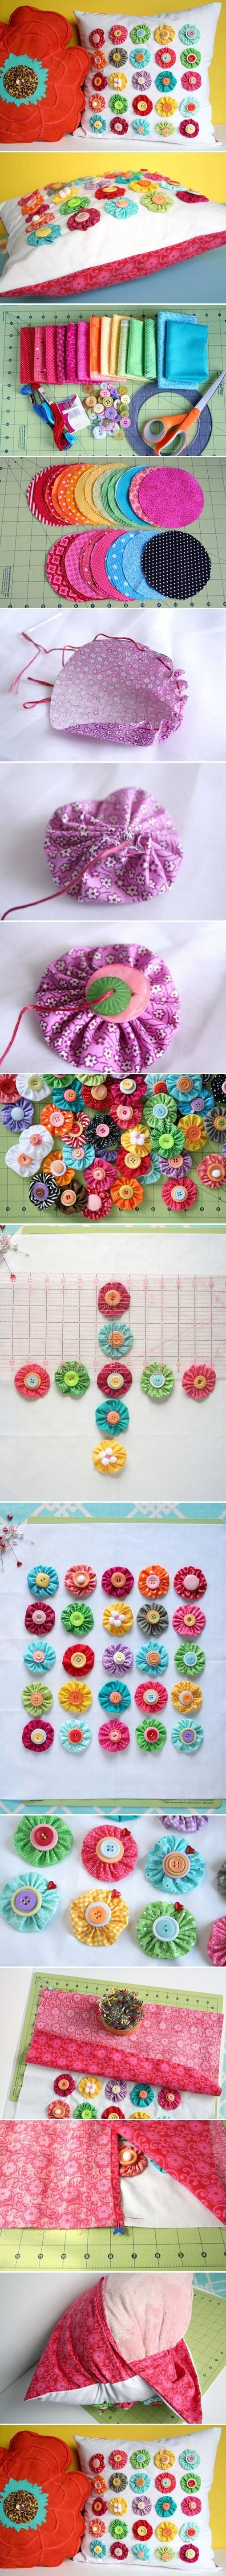 DIY Fabric Decorative Flowers DIY Fabric Decorative Flowers by crazysad